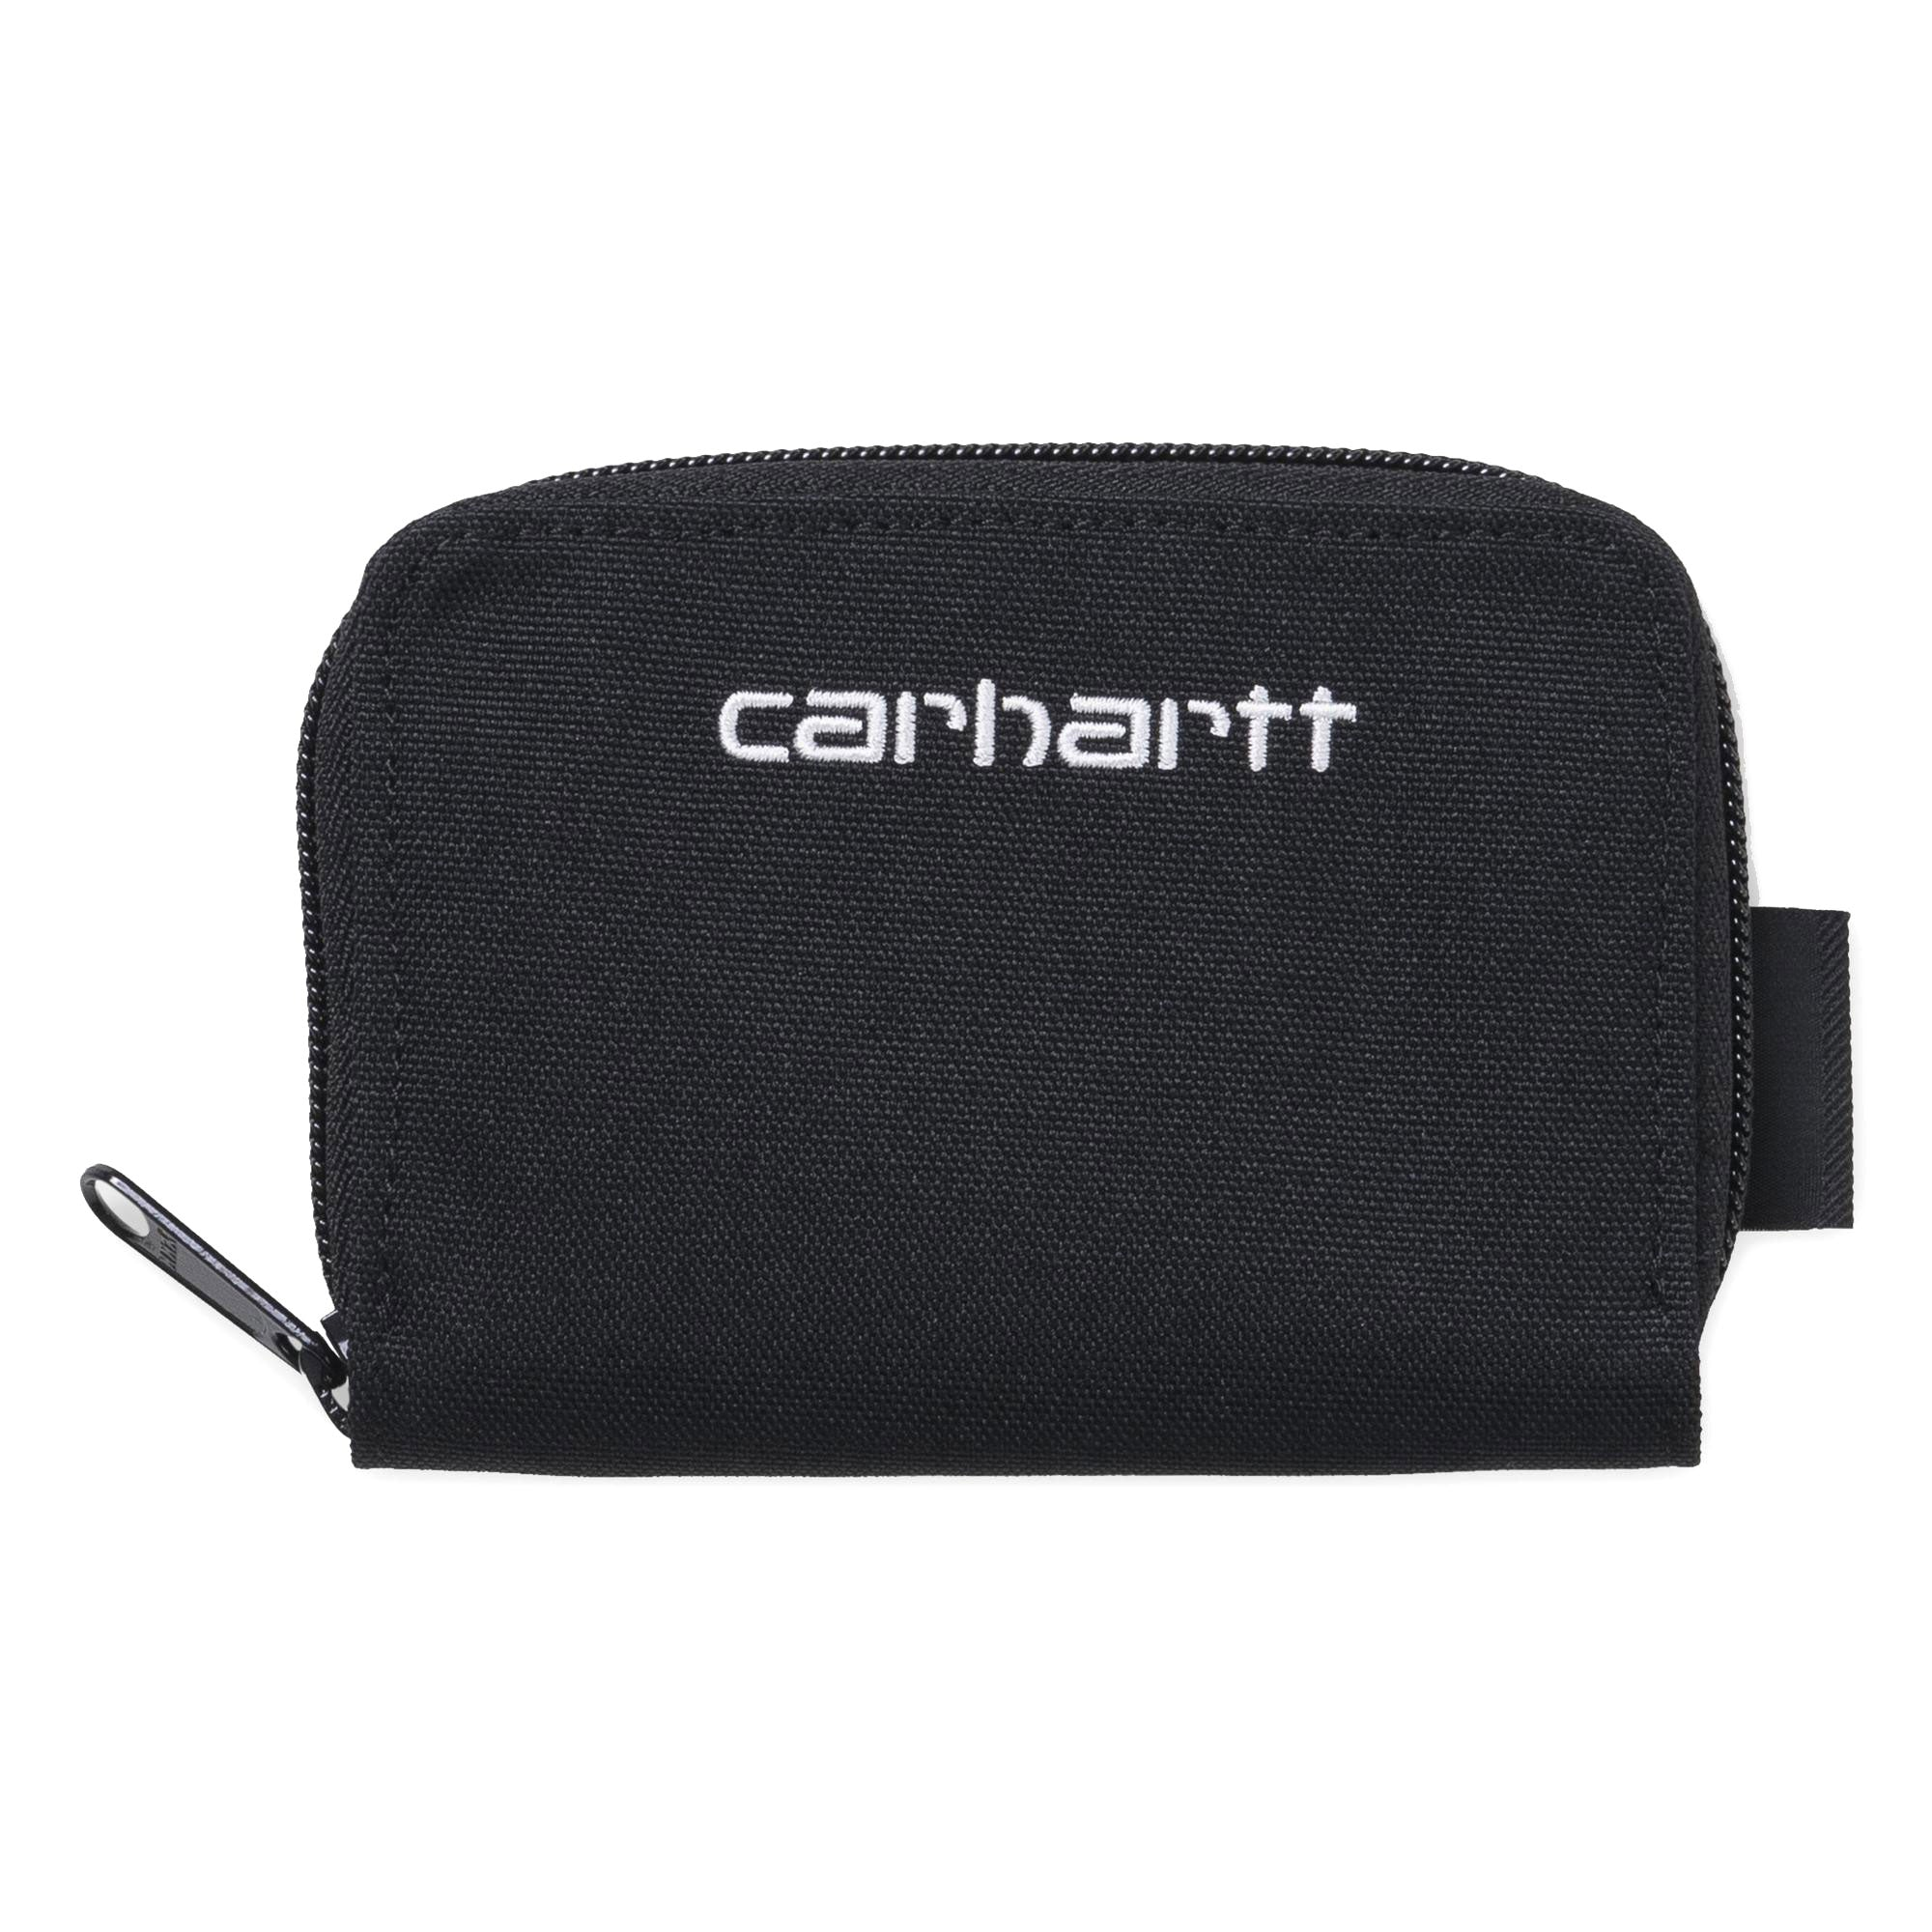 Carhartt Payton Wallet Product Photo #1